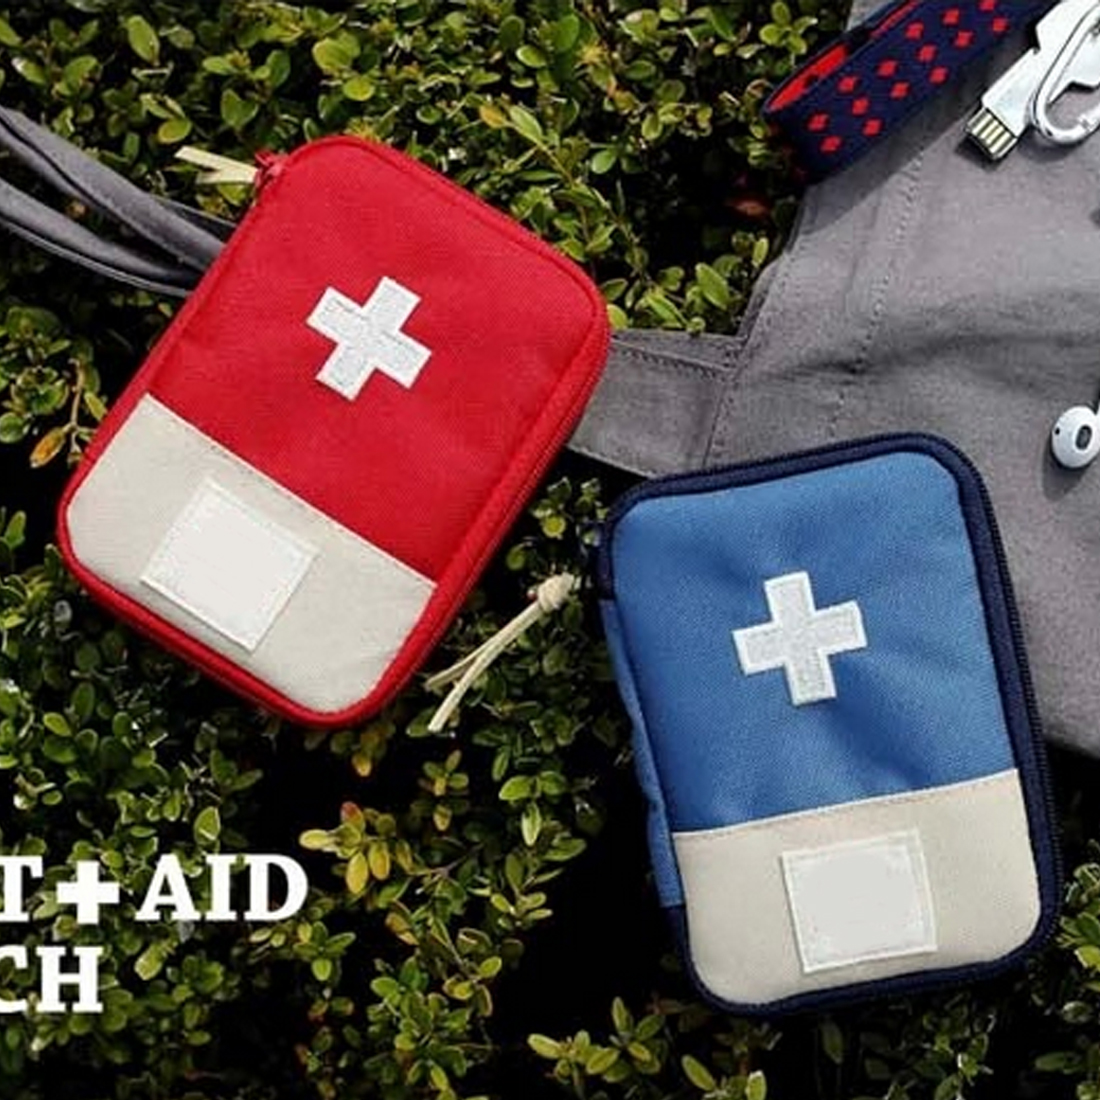 Adroit Small Storage Bag Medical Box Portable Outdoor Travel First Aid Kit Medicine Bag Home Emergency Survival Pill Case Bags Anker Suitable For Men, Women, And Children